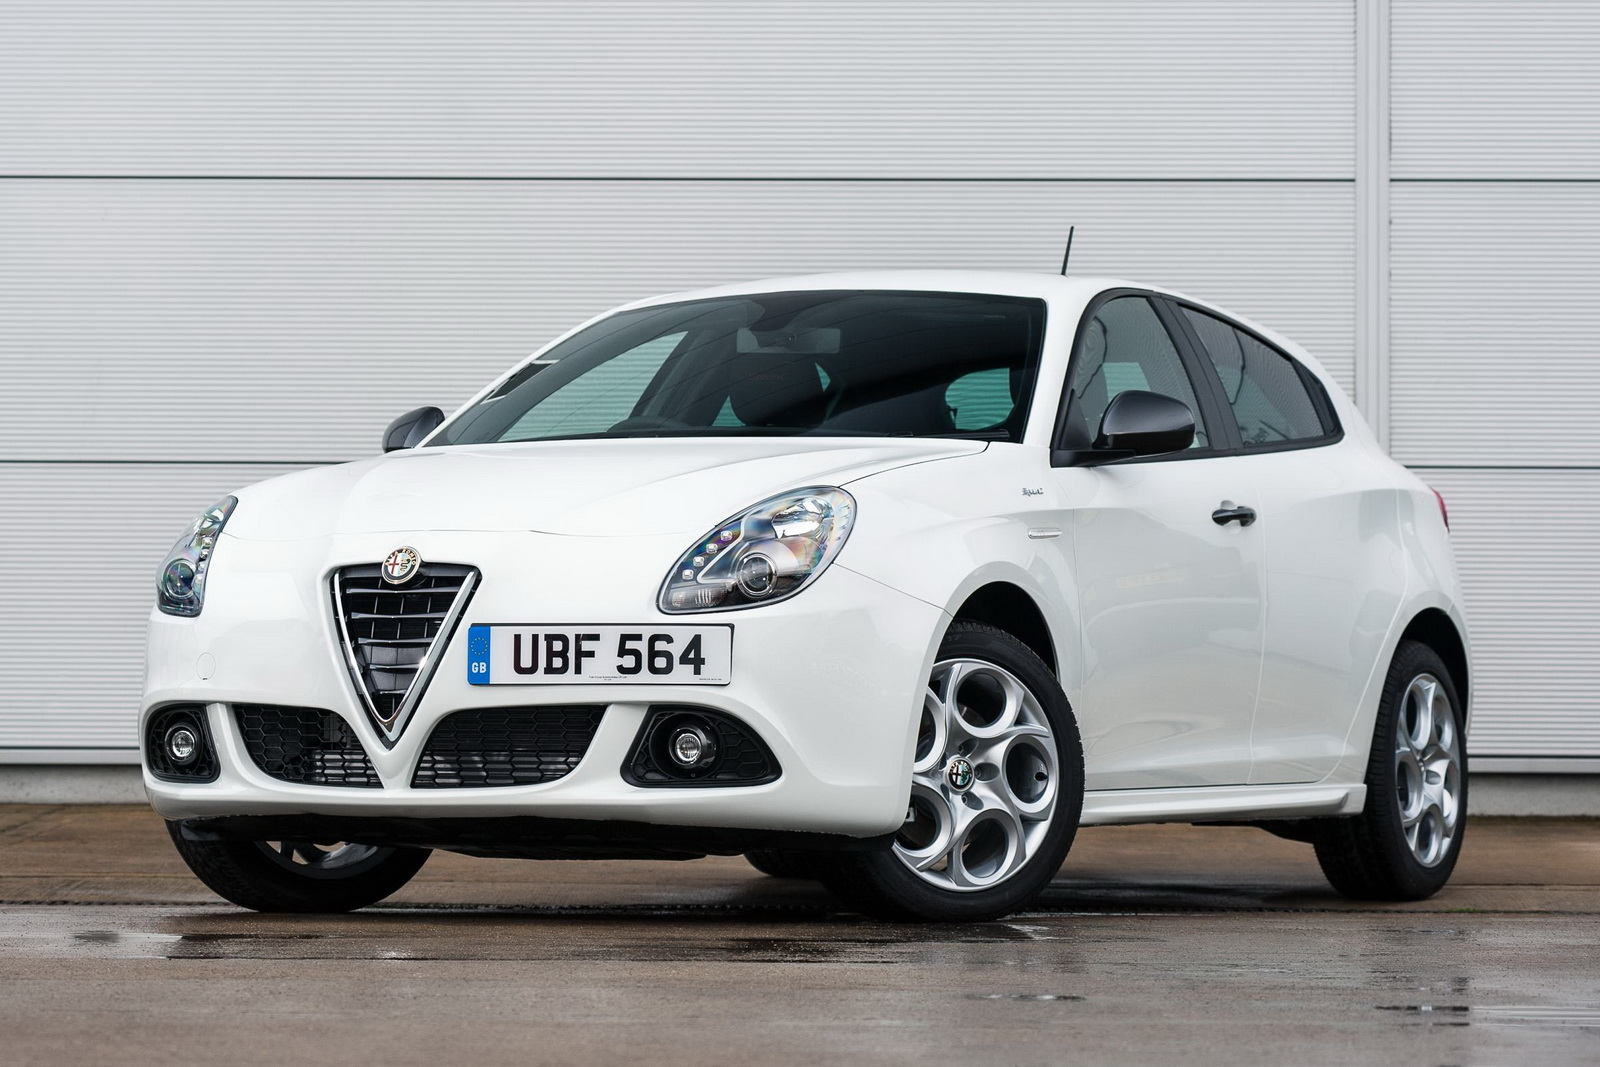 alfa romeo giulietta sprint launched in the uk priced. Black Bedroom Furniture Sets. Home Design Ideas